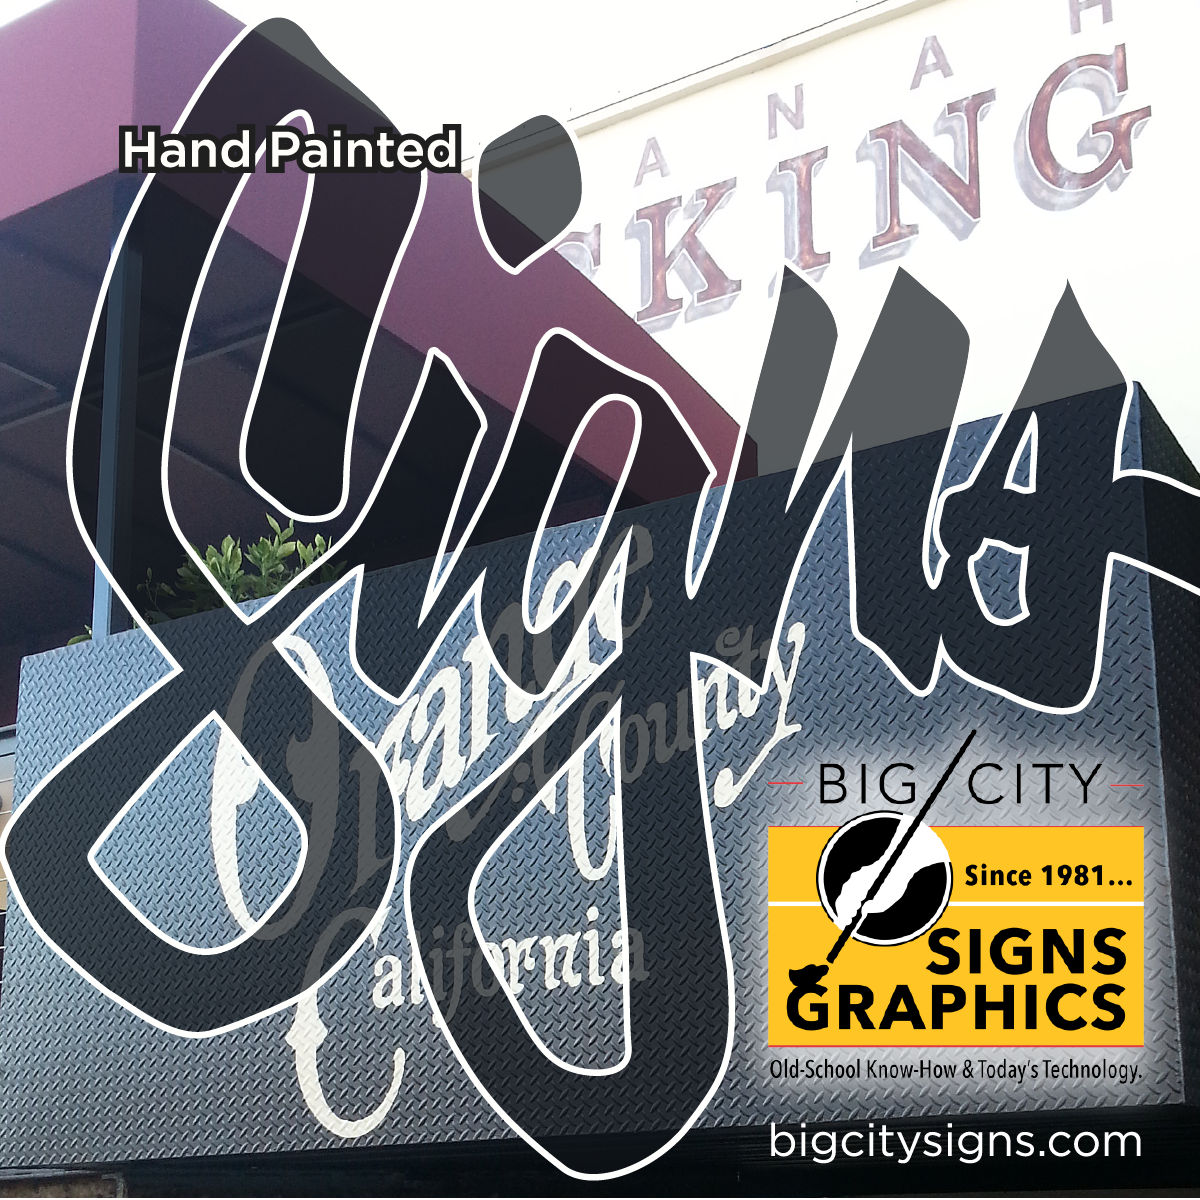 LOS ANGELES, SAN DIEGO, SOUTHERN CALIFORNIA'S SIGN PAINTER